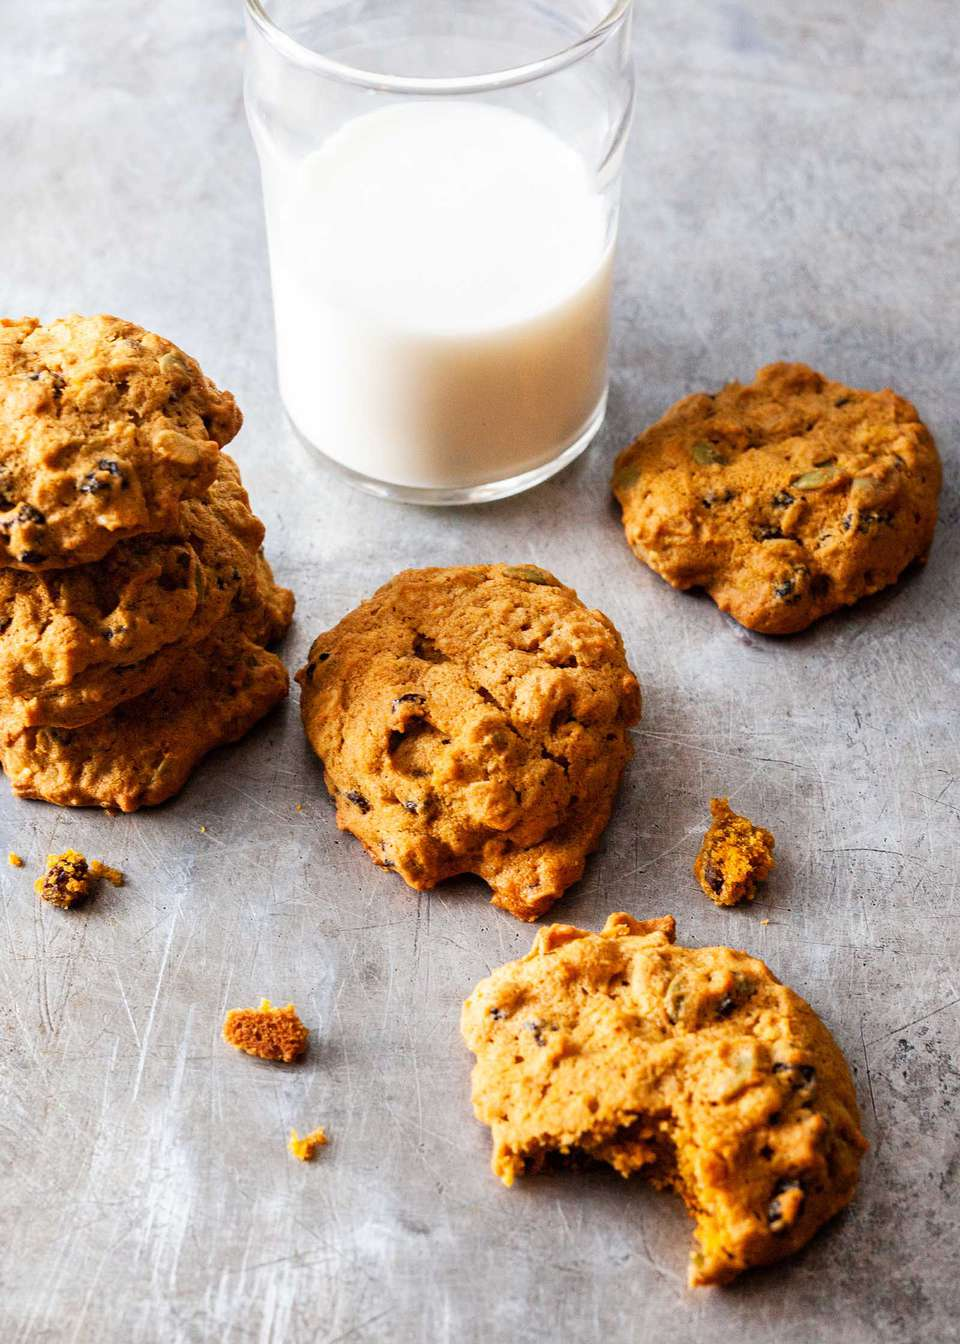 Pumpkin spice cookies on a counter with a glass of milk.